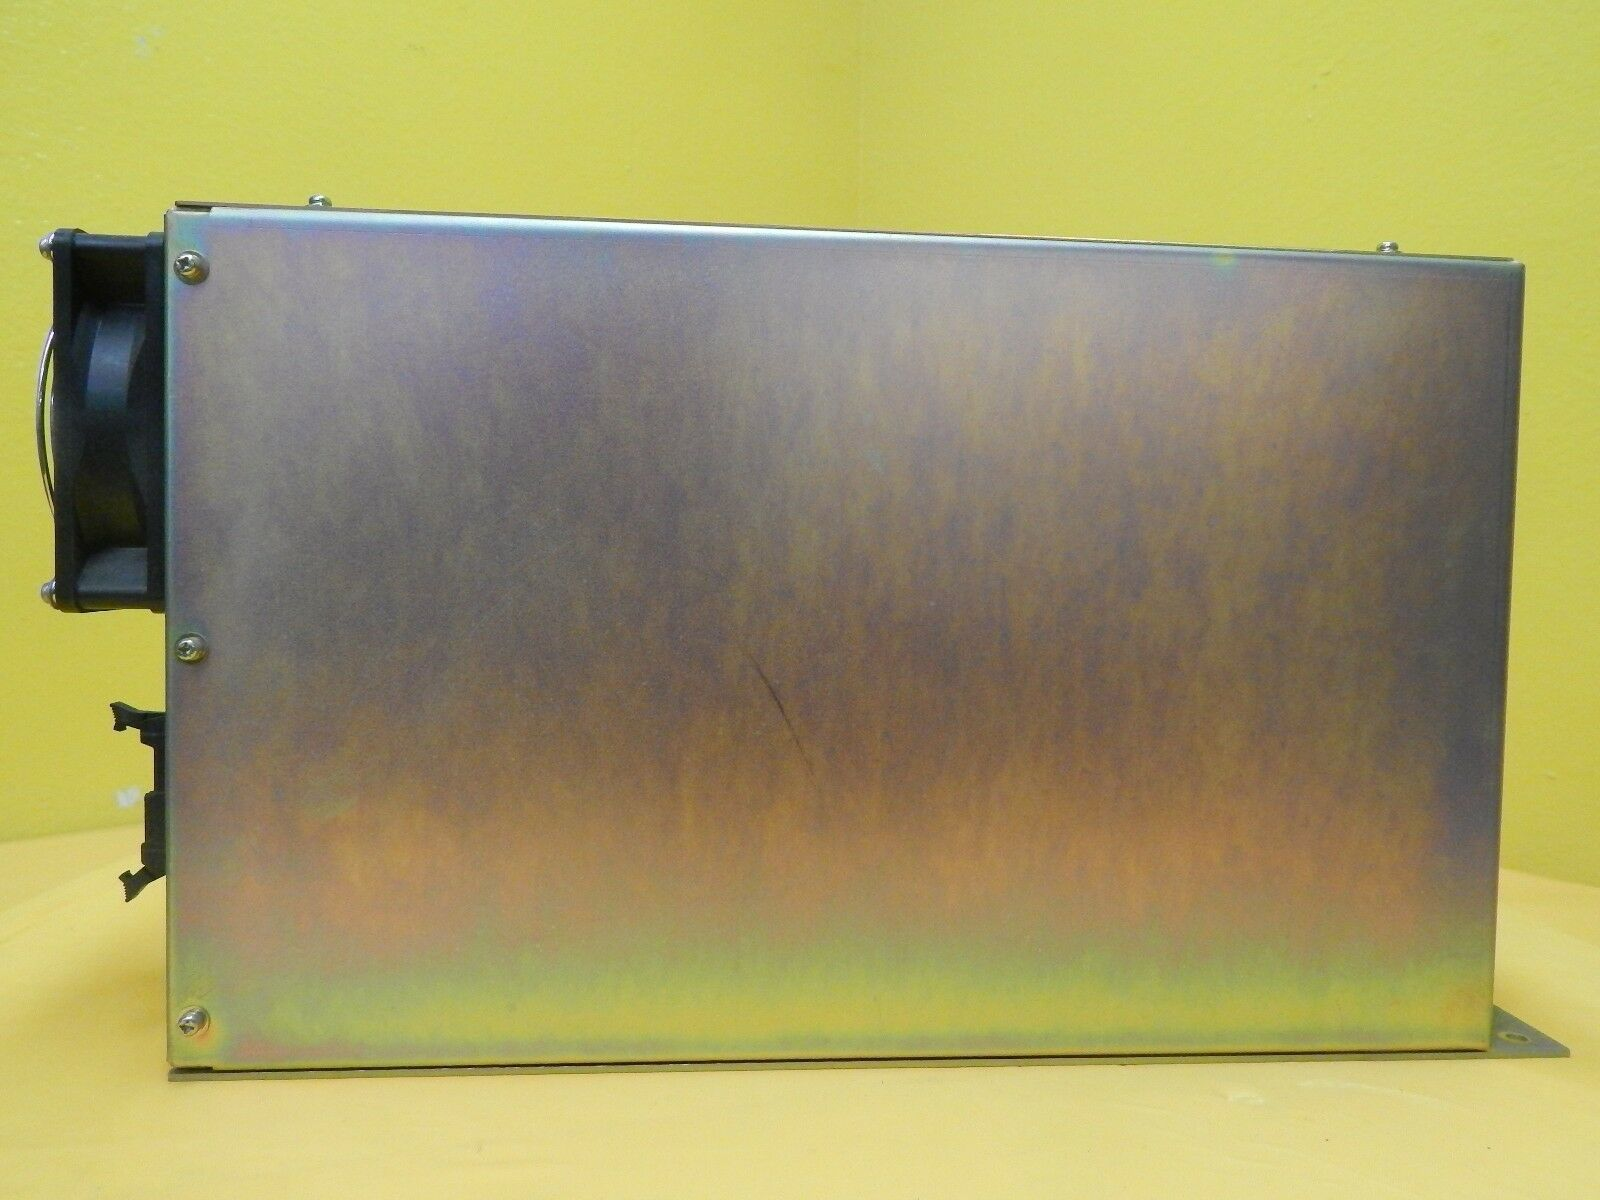 SMC INR-244-217B Power Supply PP 8inch THERMO-CON Used Working